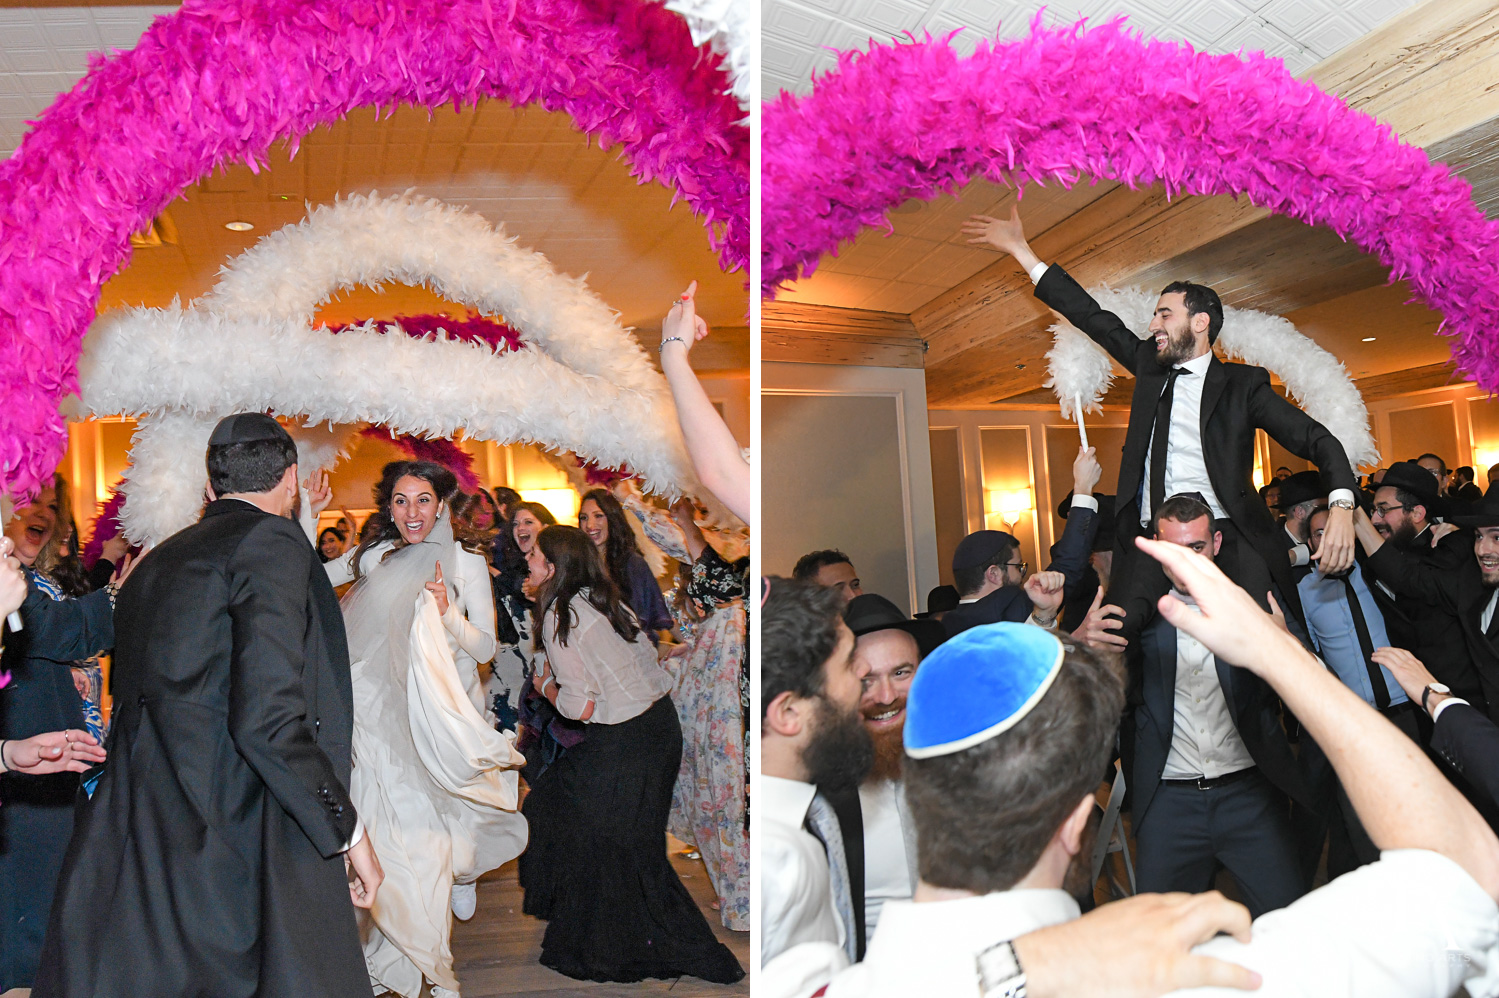 orthodox party at Hasidic Jewish Wedding at The Addison in Boca Raton by Domino Arts Photography